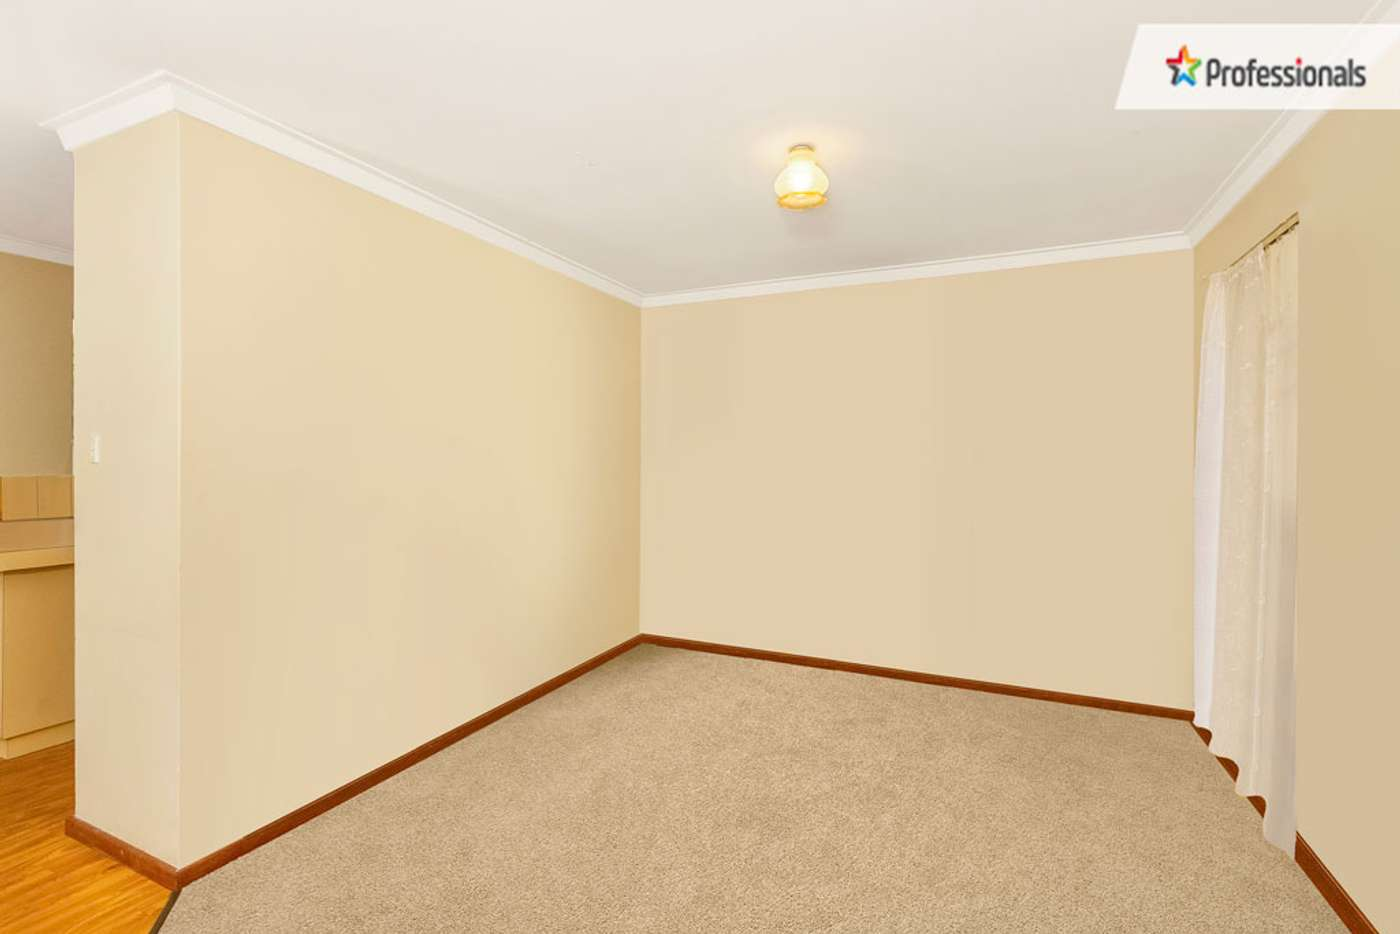 Seventh view of Homely villa listing, 8/13 Chich Place, Cannington WA 6107